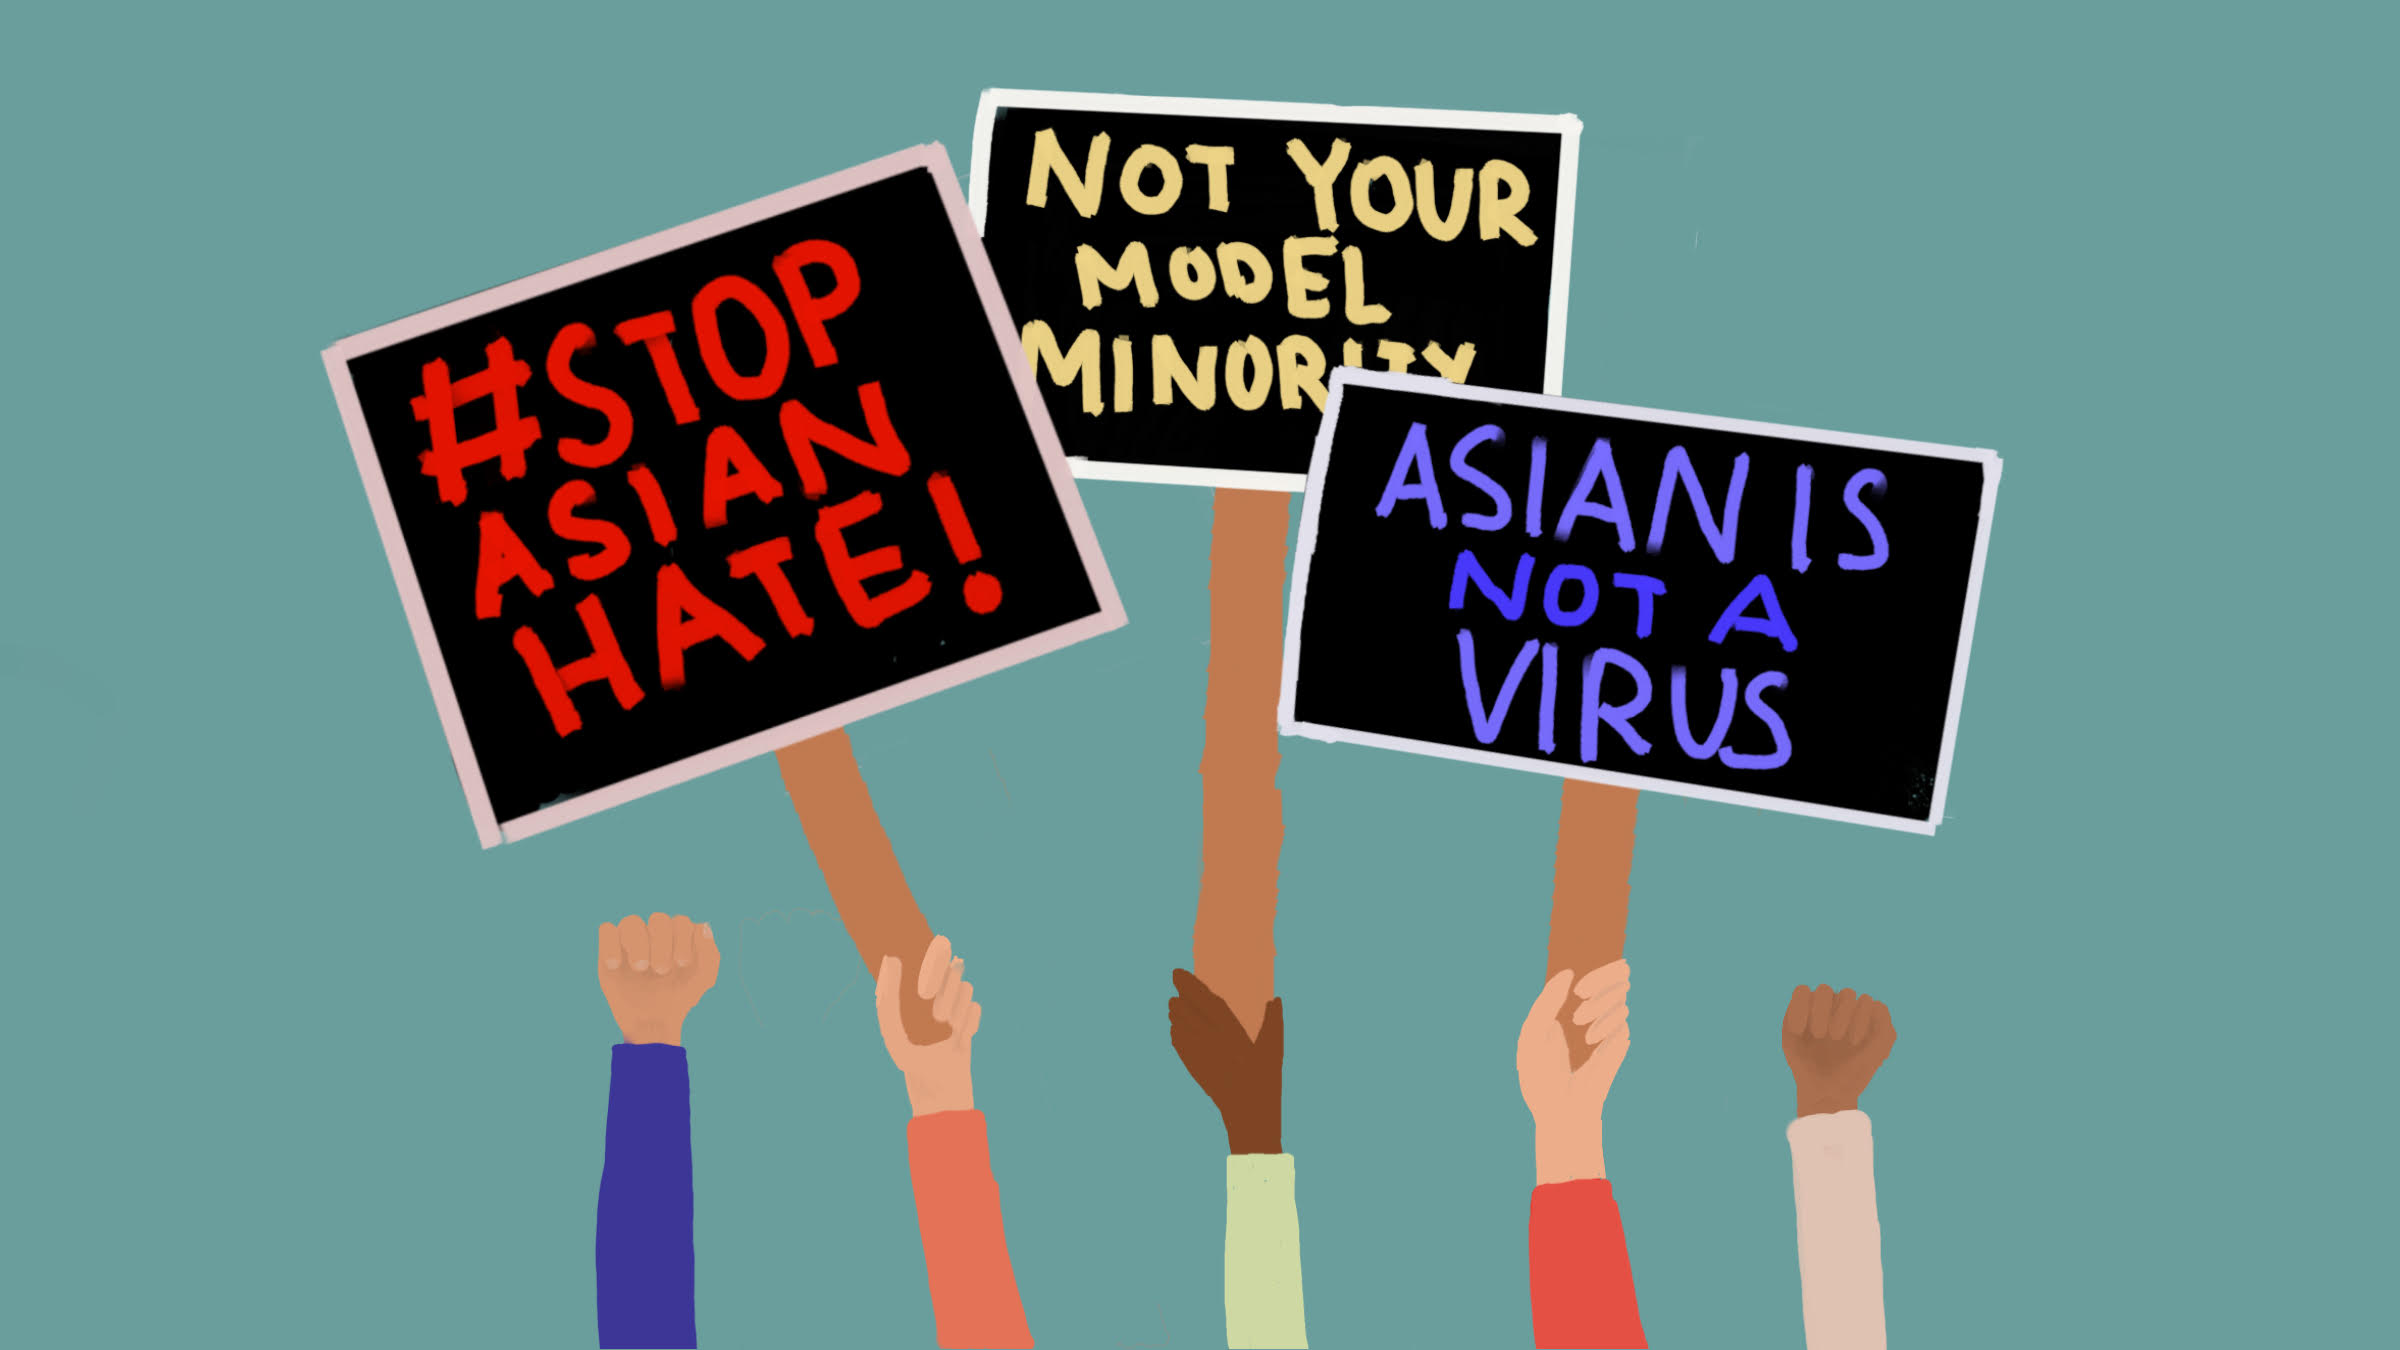 www.michigandaily.com: LSA professor leads Virulent Hate Project to increase awareness around anti-Asian hate incidents